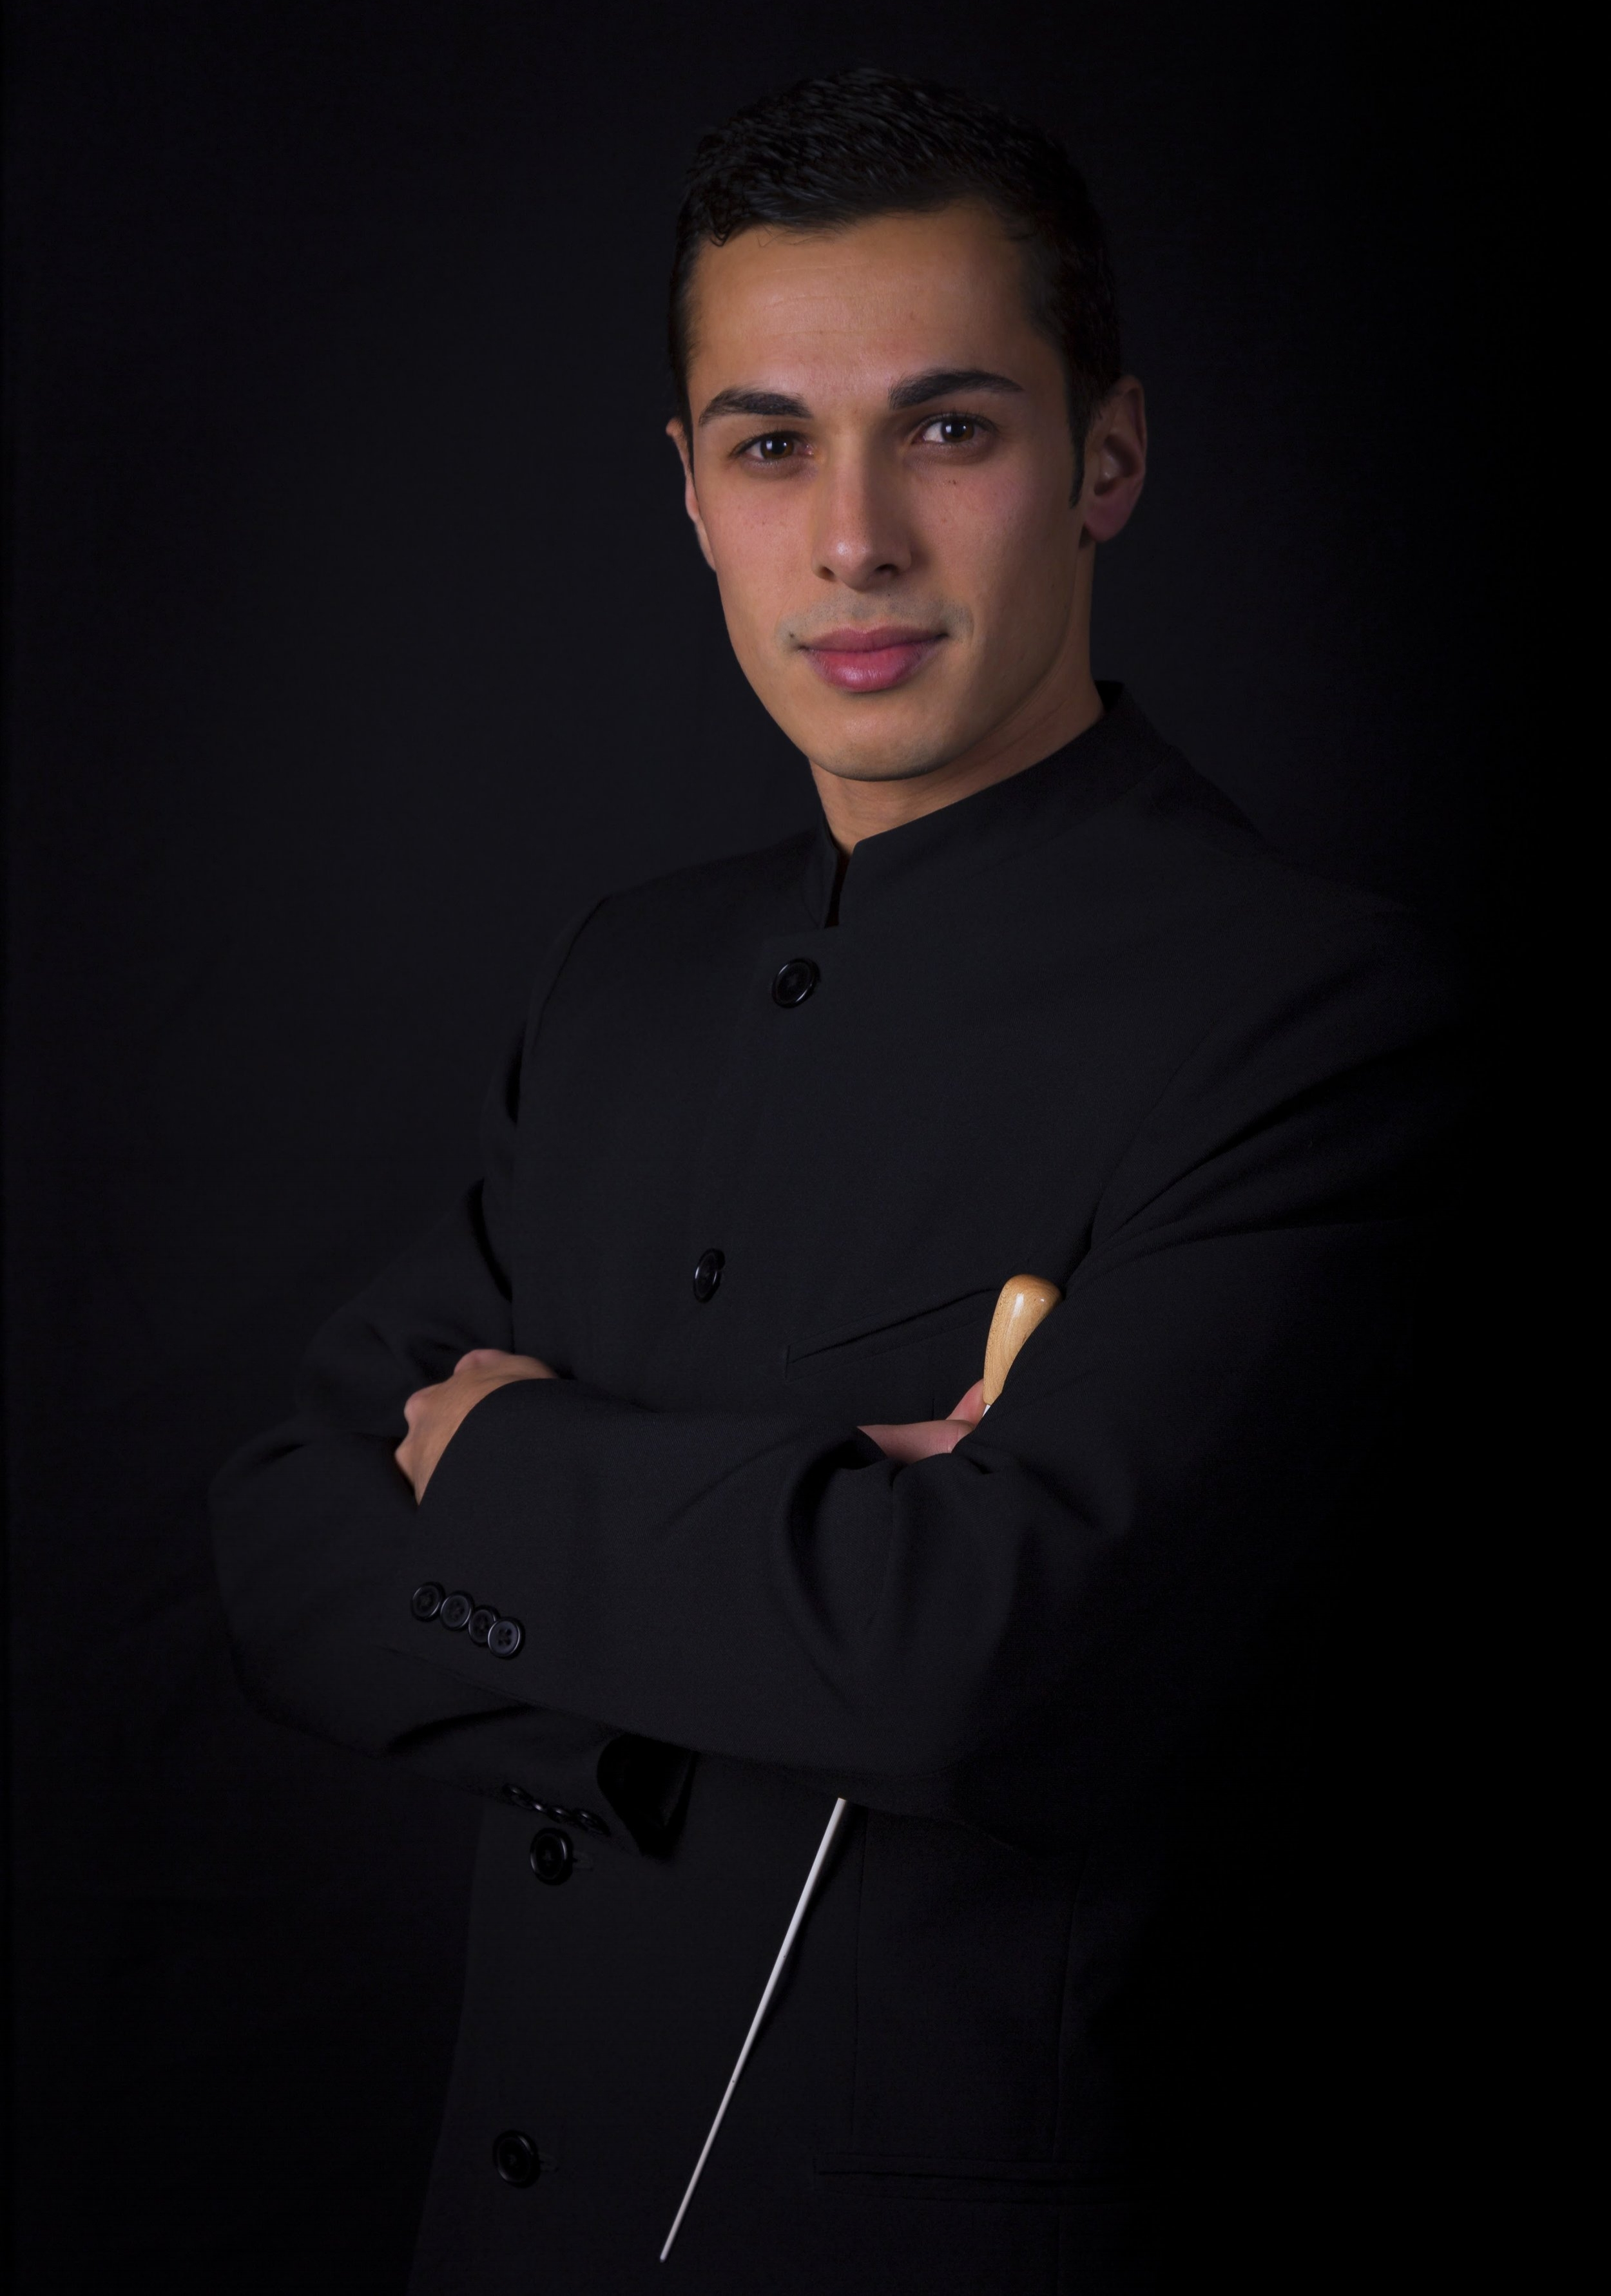 BIOGRAPHY - Born in Portugal, Diogo Costa is a rising star conductor with a vast knowledge of repertoire ranging from baroque to contemporary music.In the UK, he made his debut with the BBC National Orchestra of Wales, conducting a world premiere by Professor Andrew Lewis in March 2018, as well as with the BBC Philharmonic Orchestra in June. He has also worked with the West European Studio Orchestra on a project recorded in the legendary Abbey Road Studios in London.Upcoming projects include concerts with the Portuguese Symphony Orchestra for the seventh International Jorma Panula Conducting Competition.Full biographies are available in: EN | FR